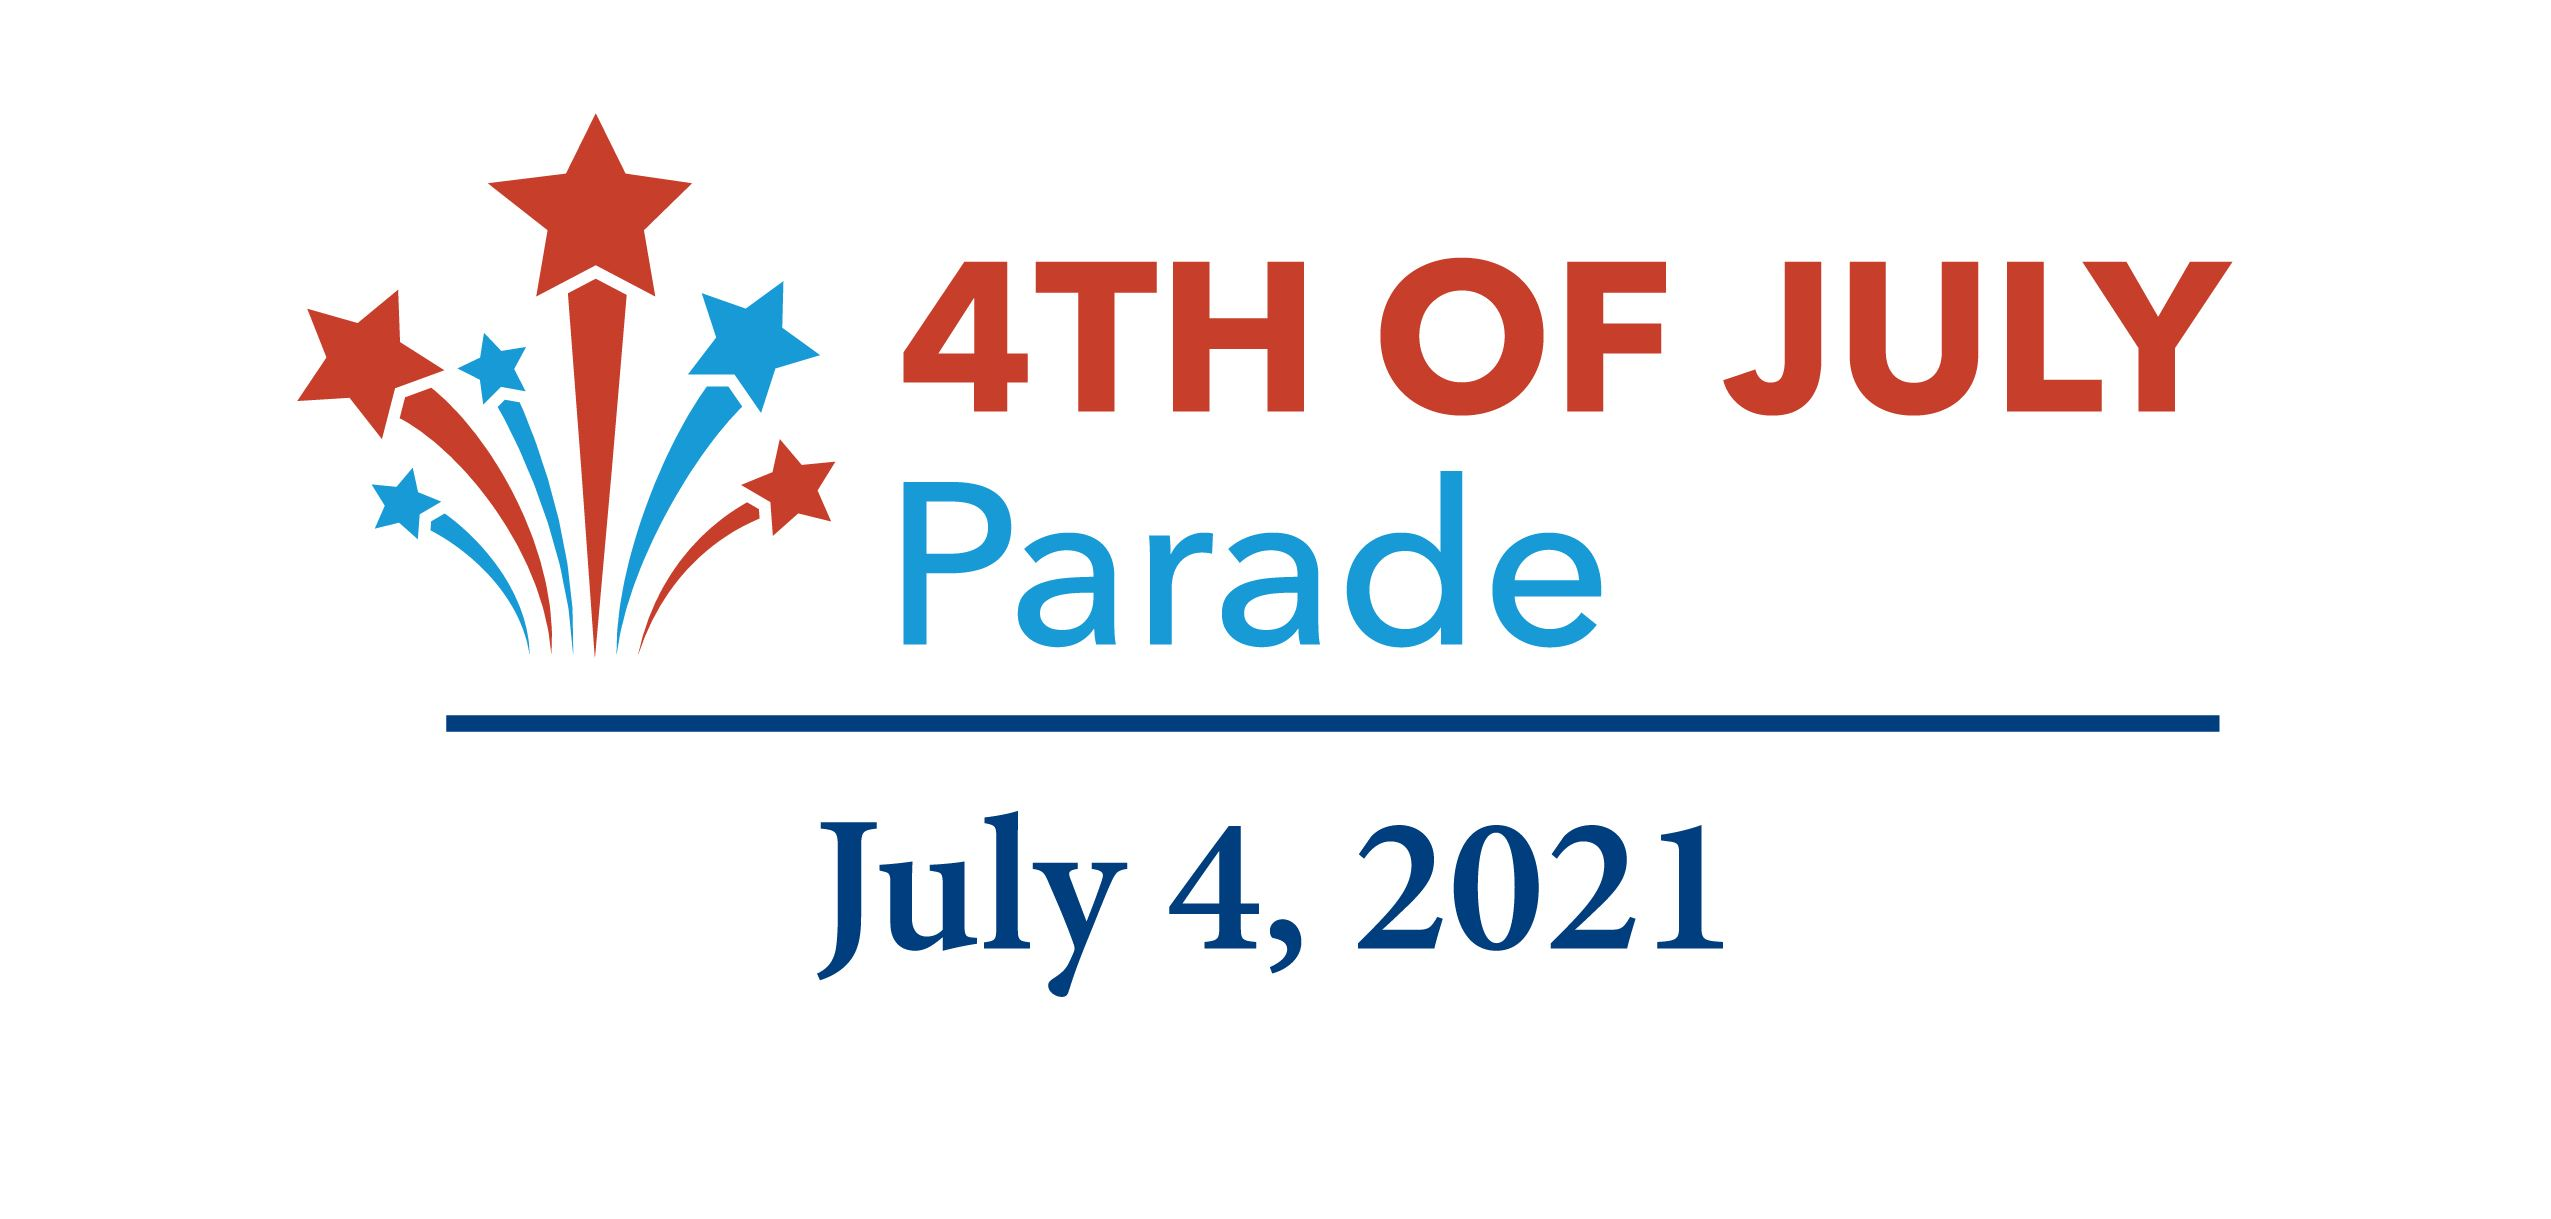 2021 4th of July Parade